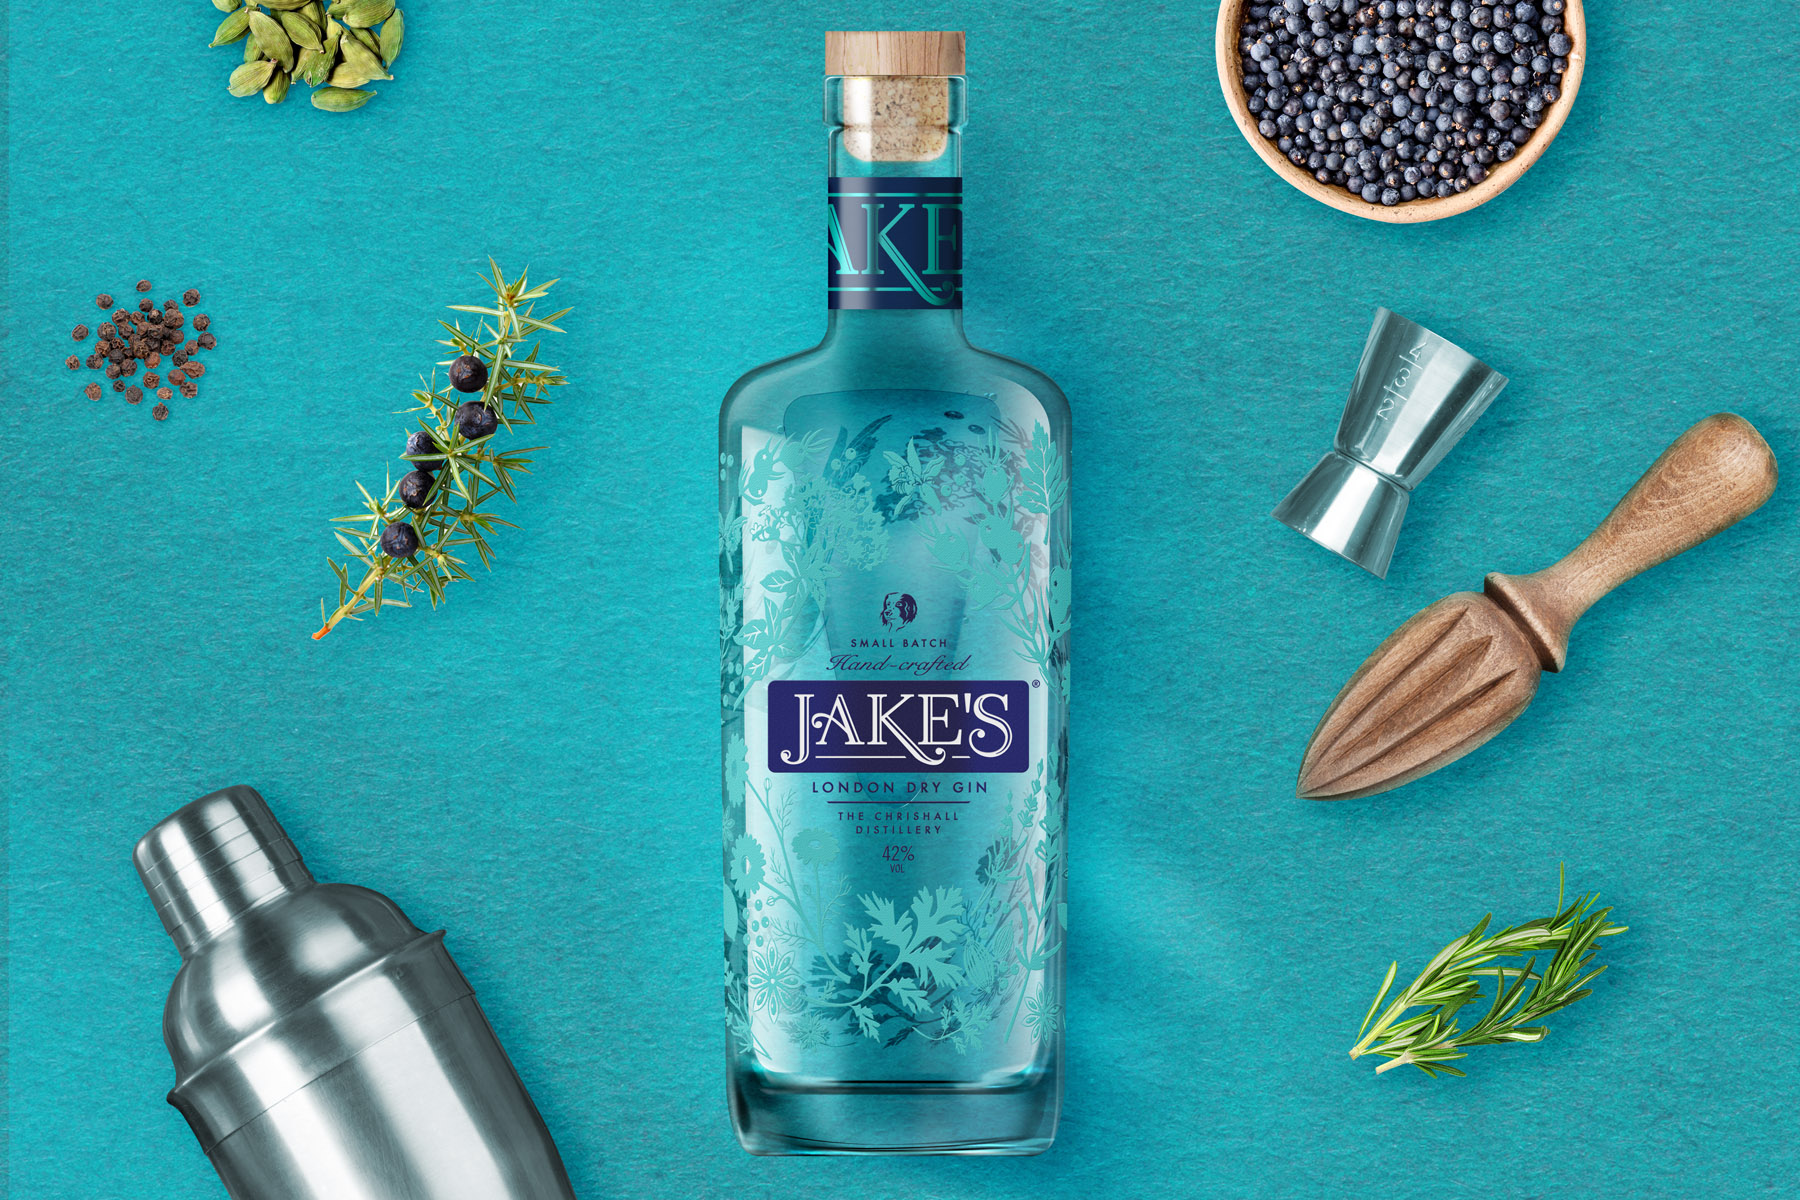 jakes-gin-packaging-design-2